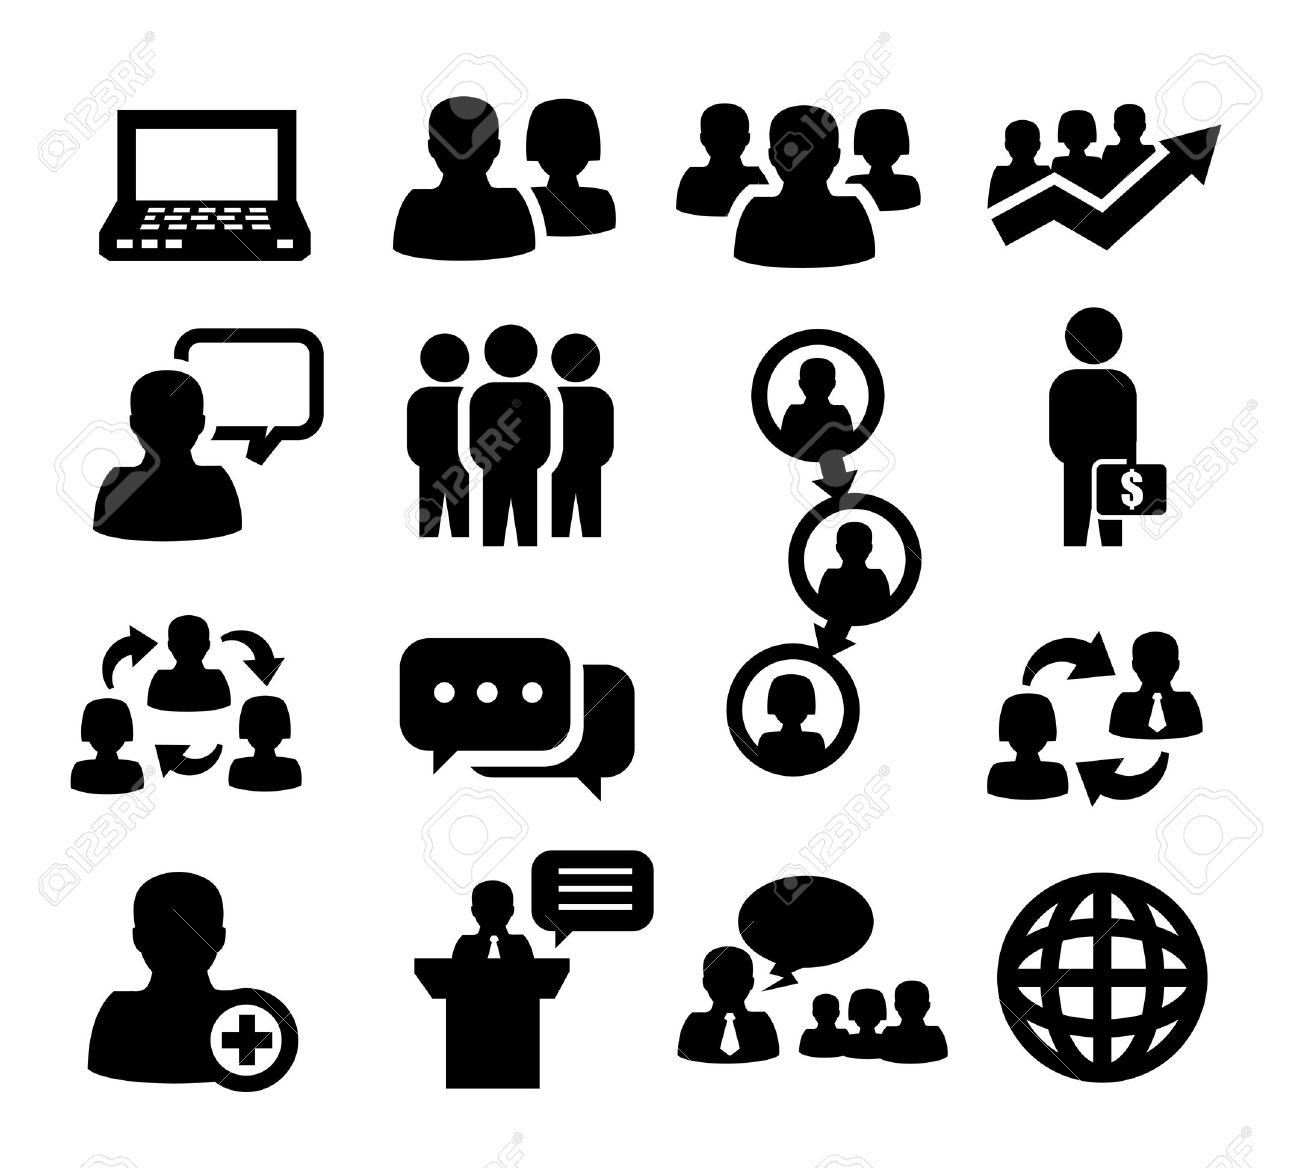 Free Icons Cliparts Download Free Clip Art Free Clip Art